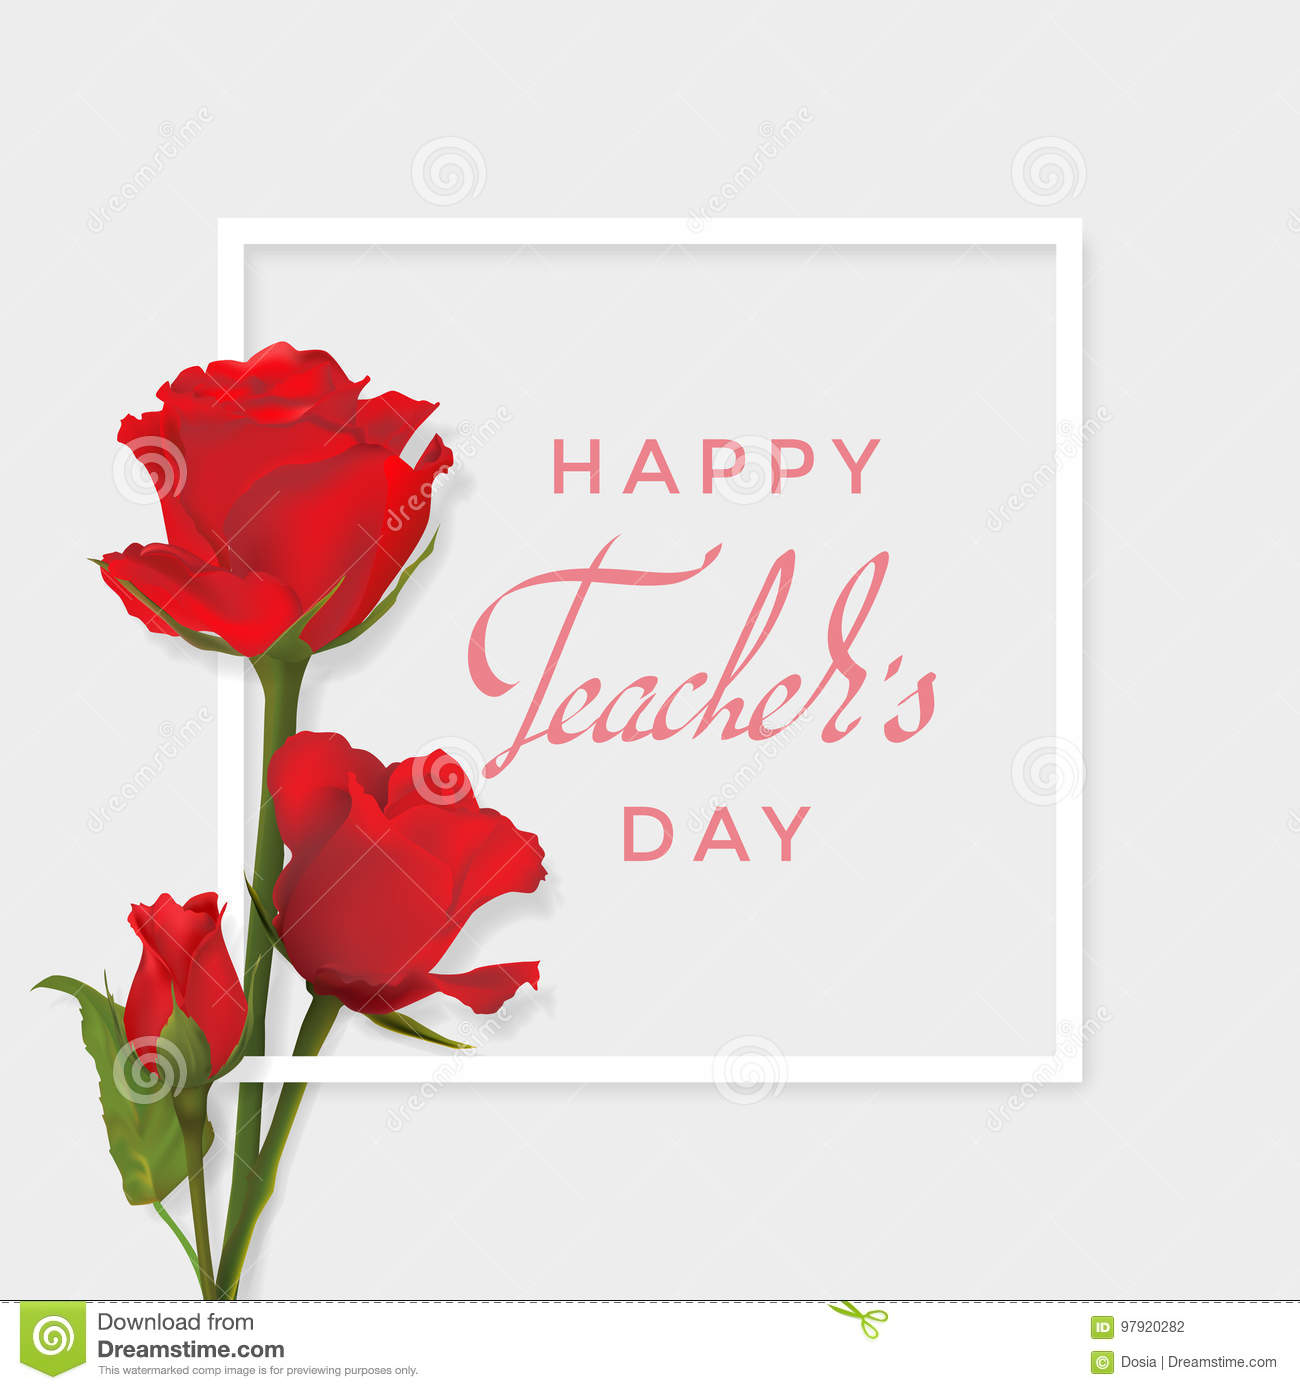 Teachers Day Card With Roses Stock Vector Illustration Of